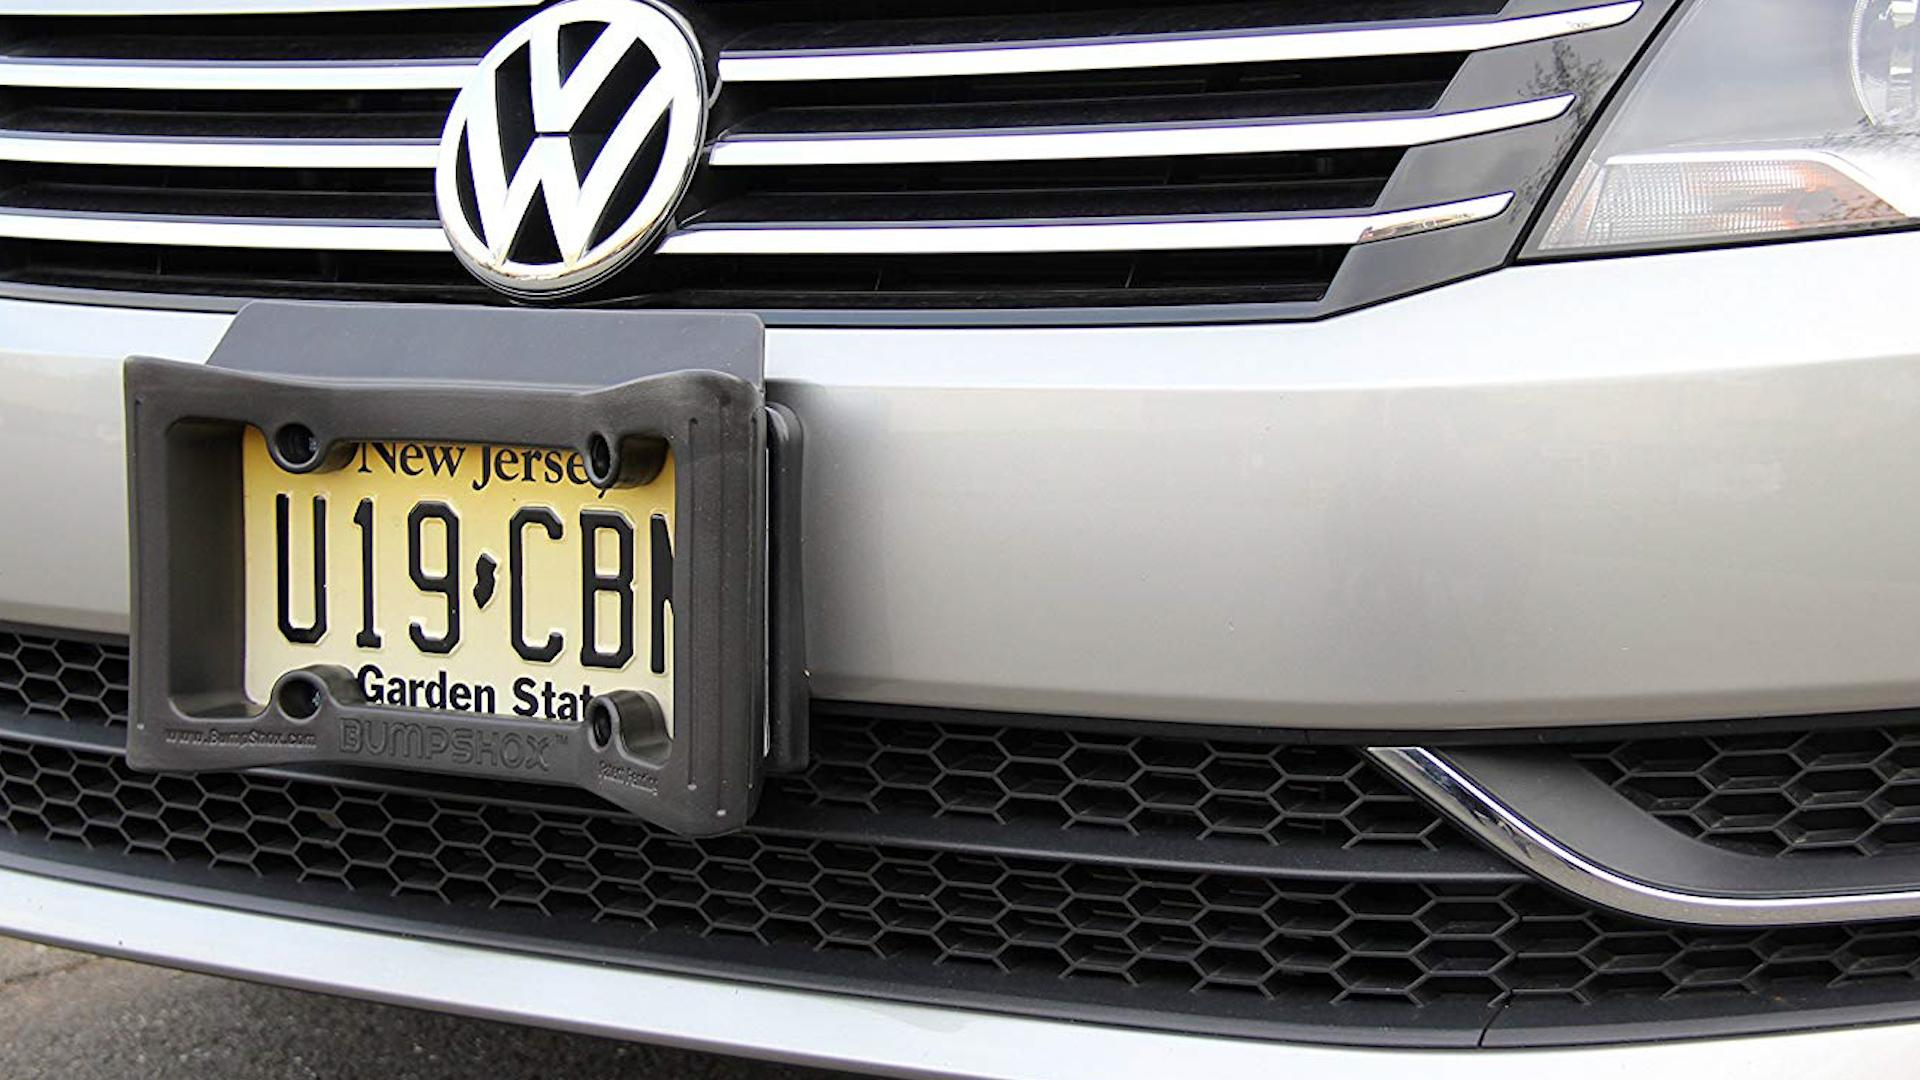 This bumper for your license plate could soften your next fender bender